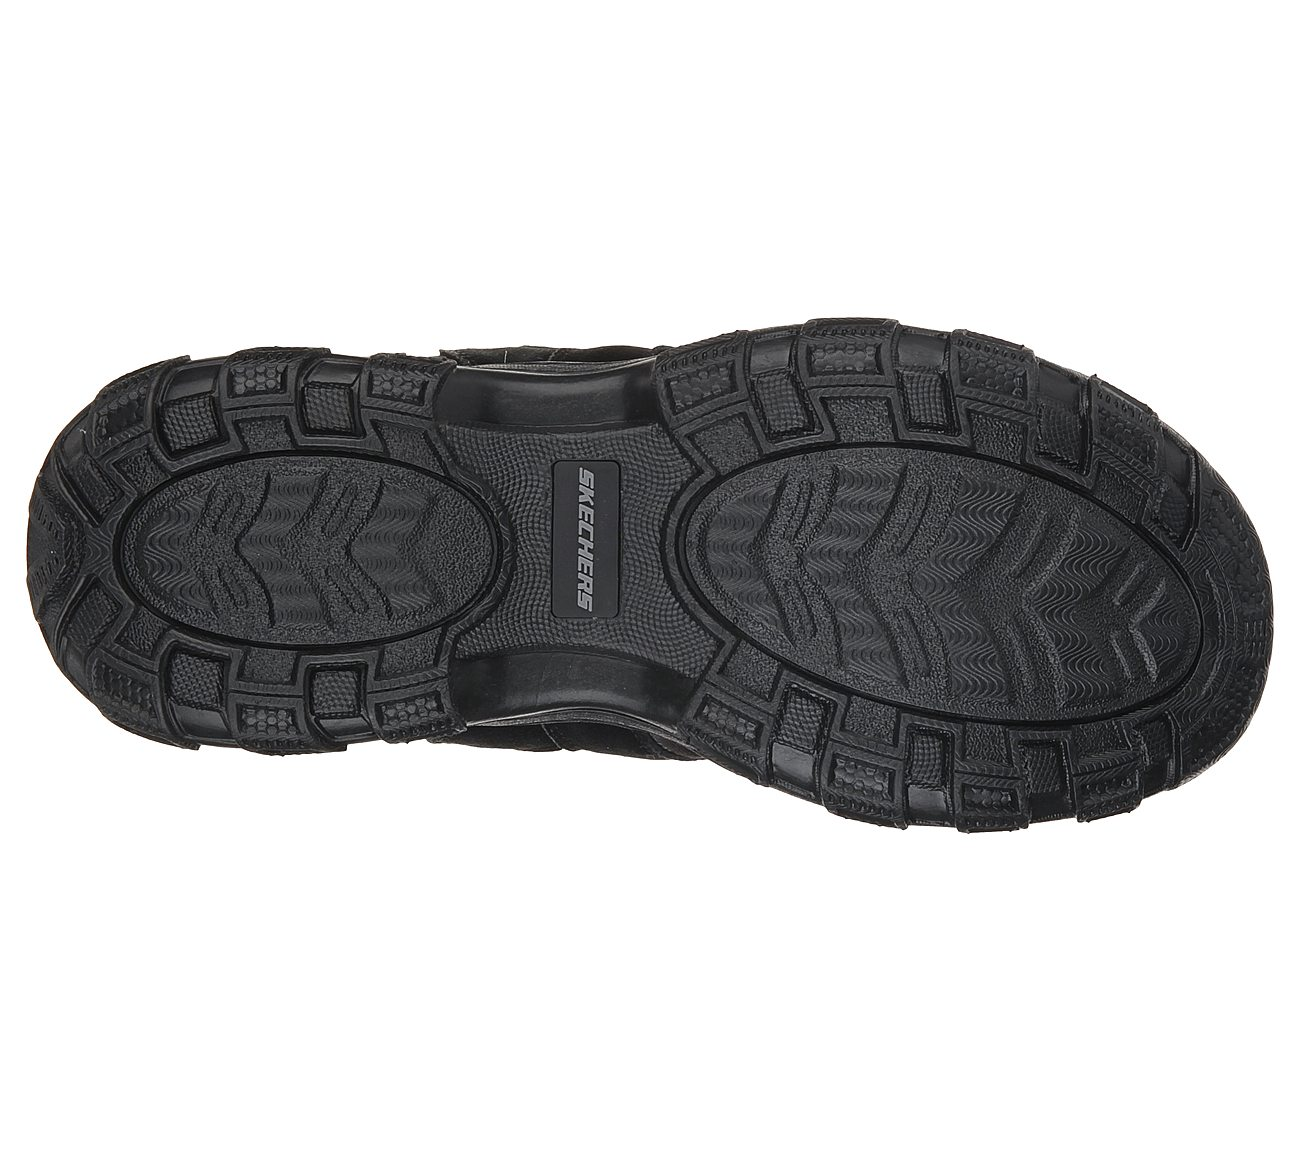 fd9289dbb2ce Buy SKECHERS Relaxed Fit  Conifer - Selmo USA Casuals Shoes only  65.00